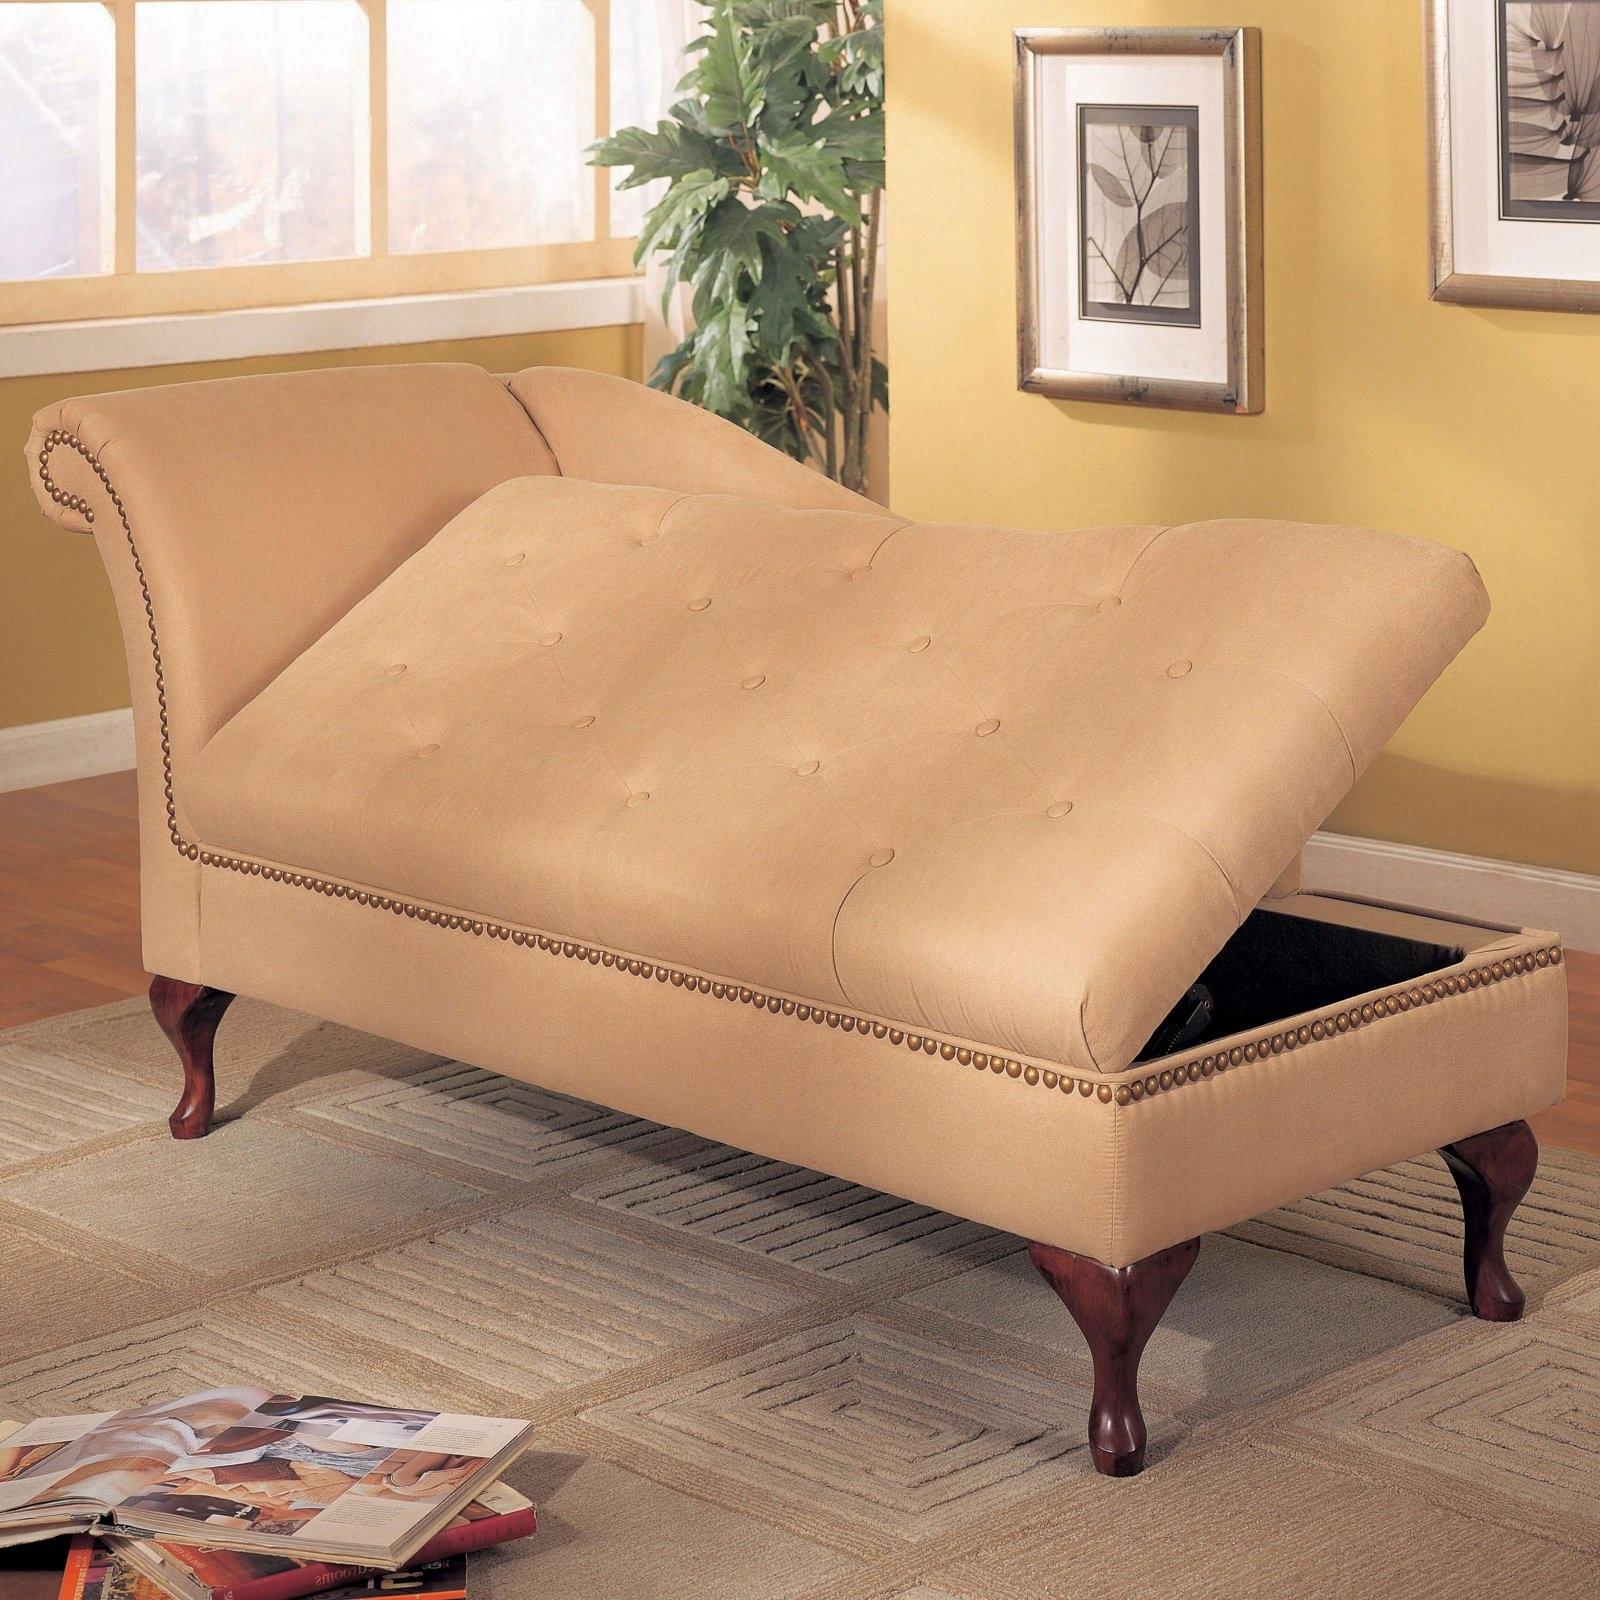 Preferred Small Chaise Lounges In Small Chaise Lounge Chair For Bedroom • Lounge Chairs Ideas (View 8 of 15)